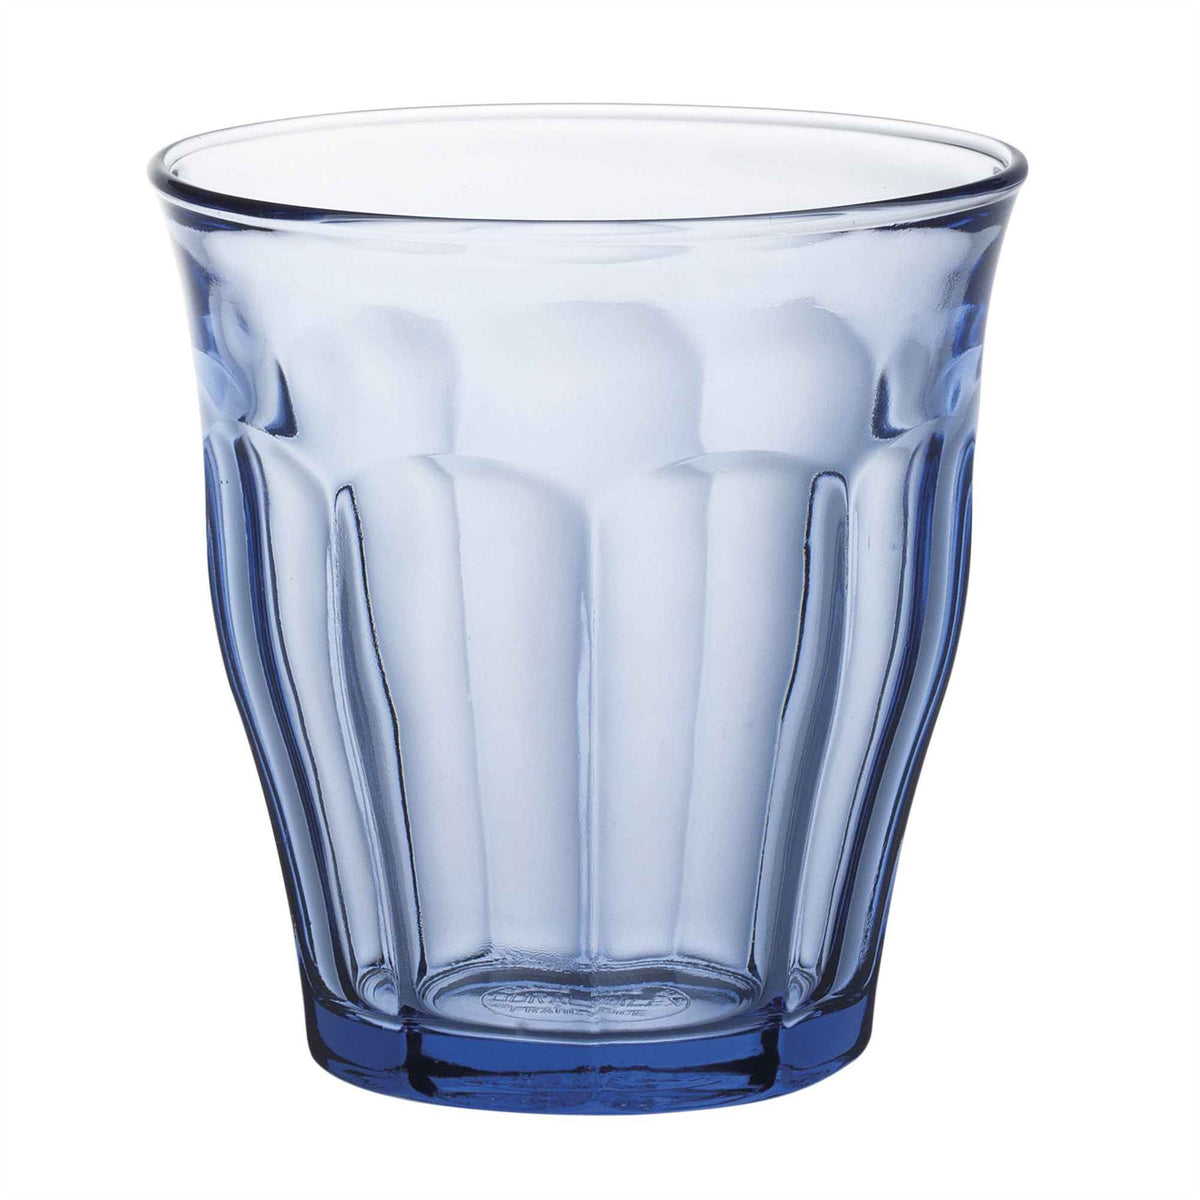 Duralex Picardie Traditional Glass Drinking Tumbler - Blue - 250ml